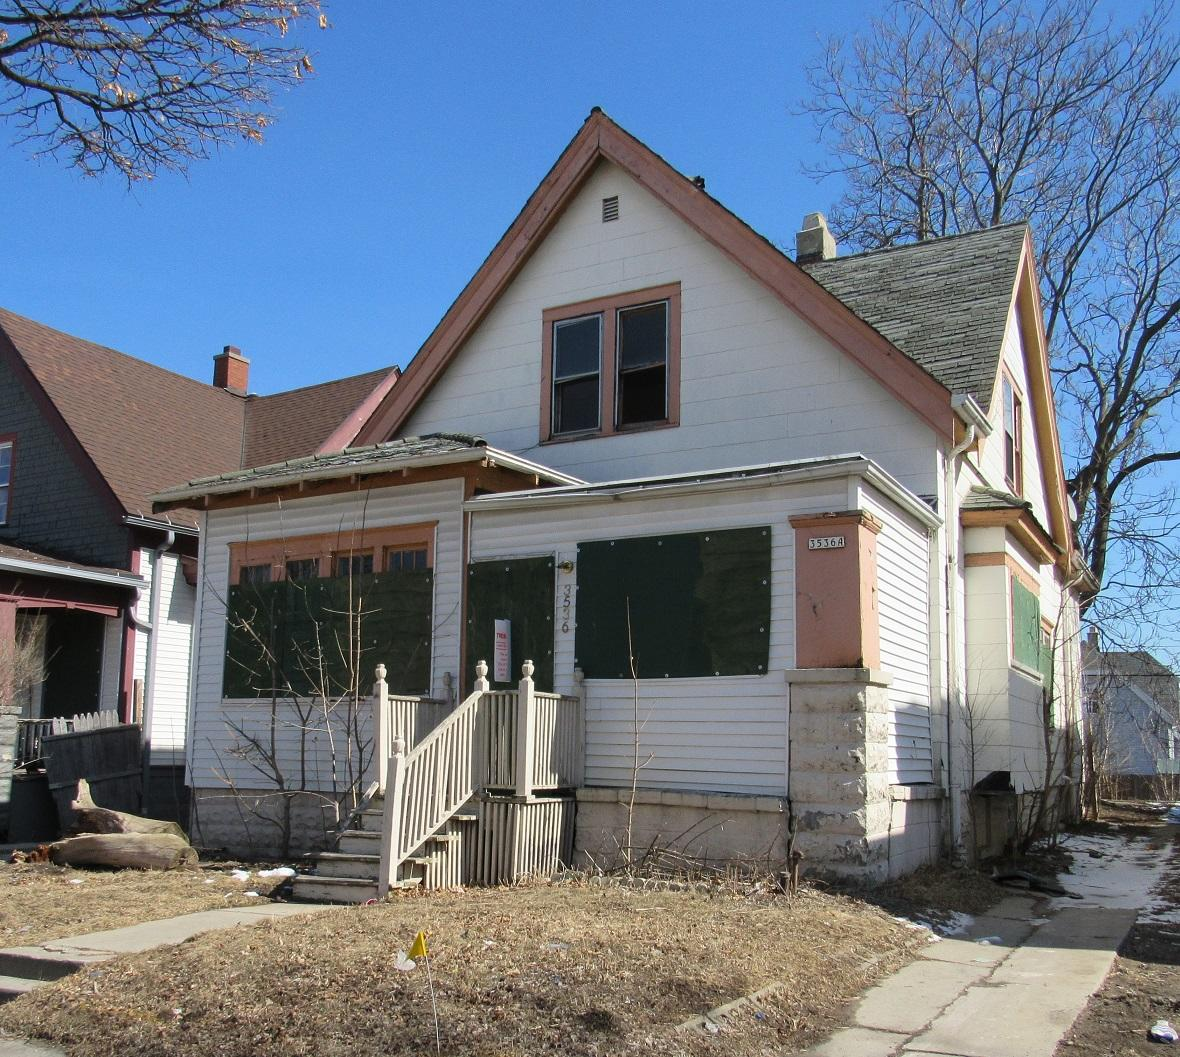 3536 19th St, Milwaukee, Wisconsin 53206, 2 Bedrooms Bedrooms, 5 Rooms Rooms,1 BathroomBathrooms,Two-Family,For Sale,19th St,1,1570464